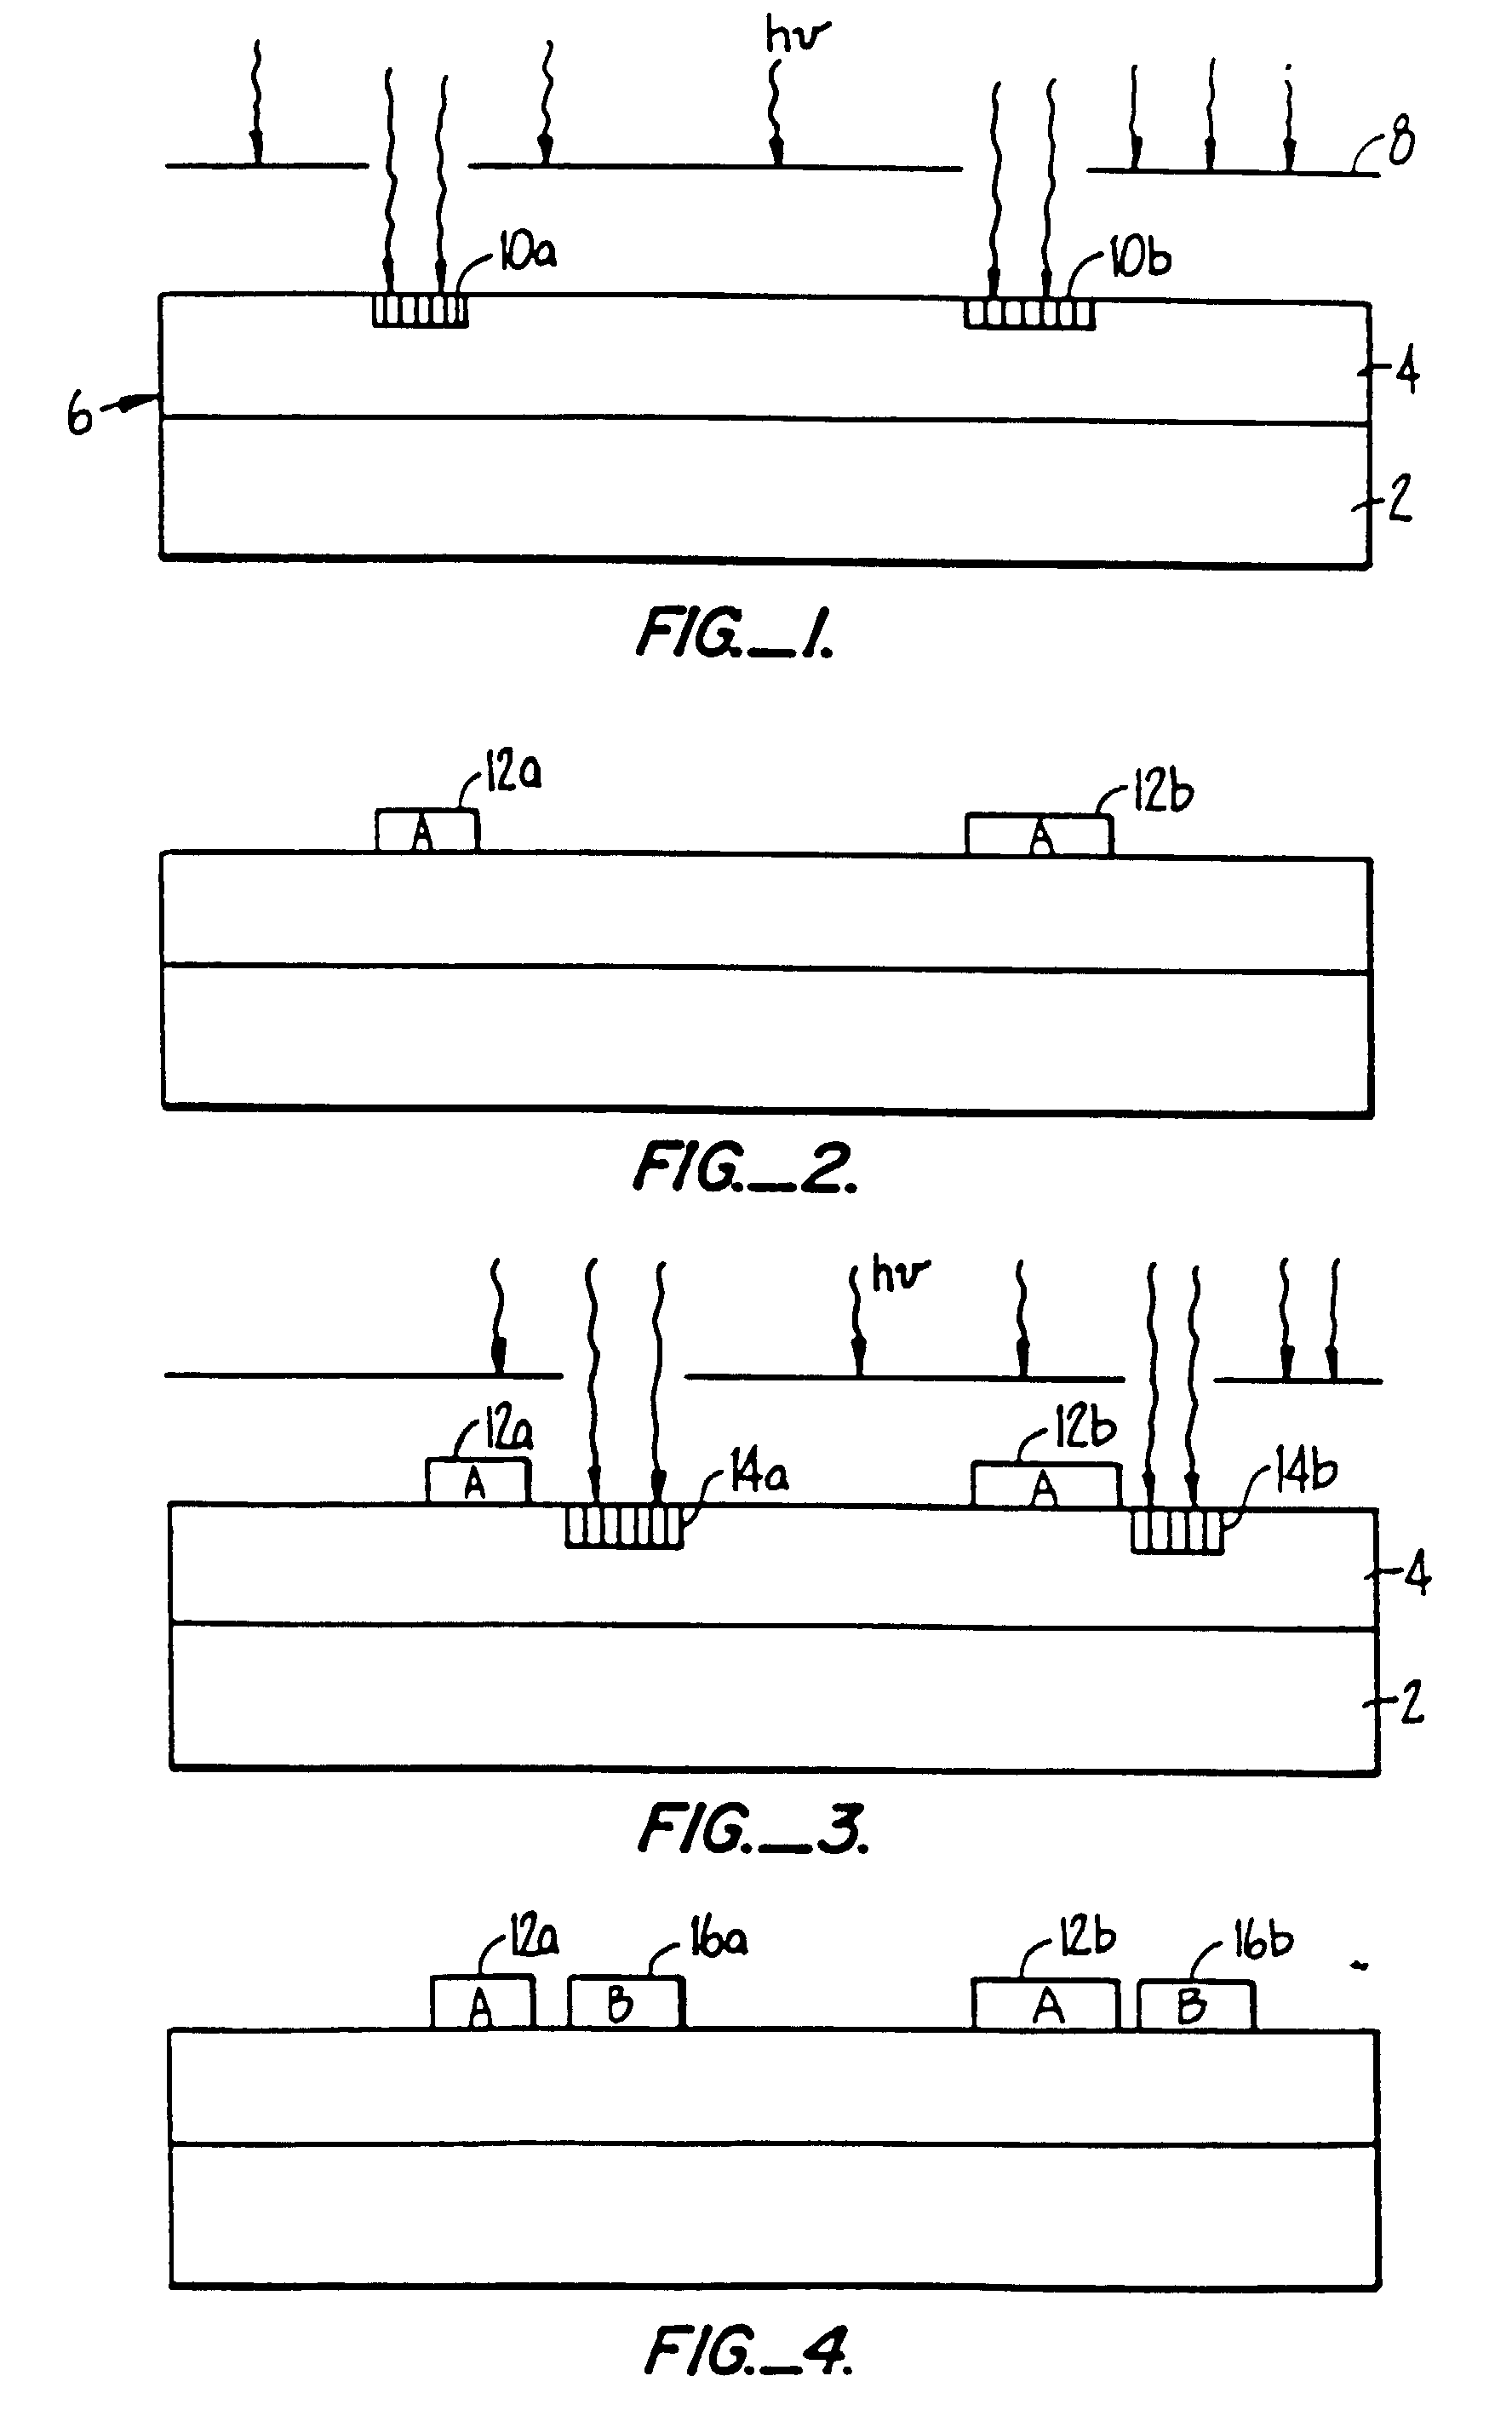 EP0619321B1 - Method and apparatus for investigating